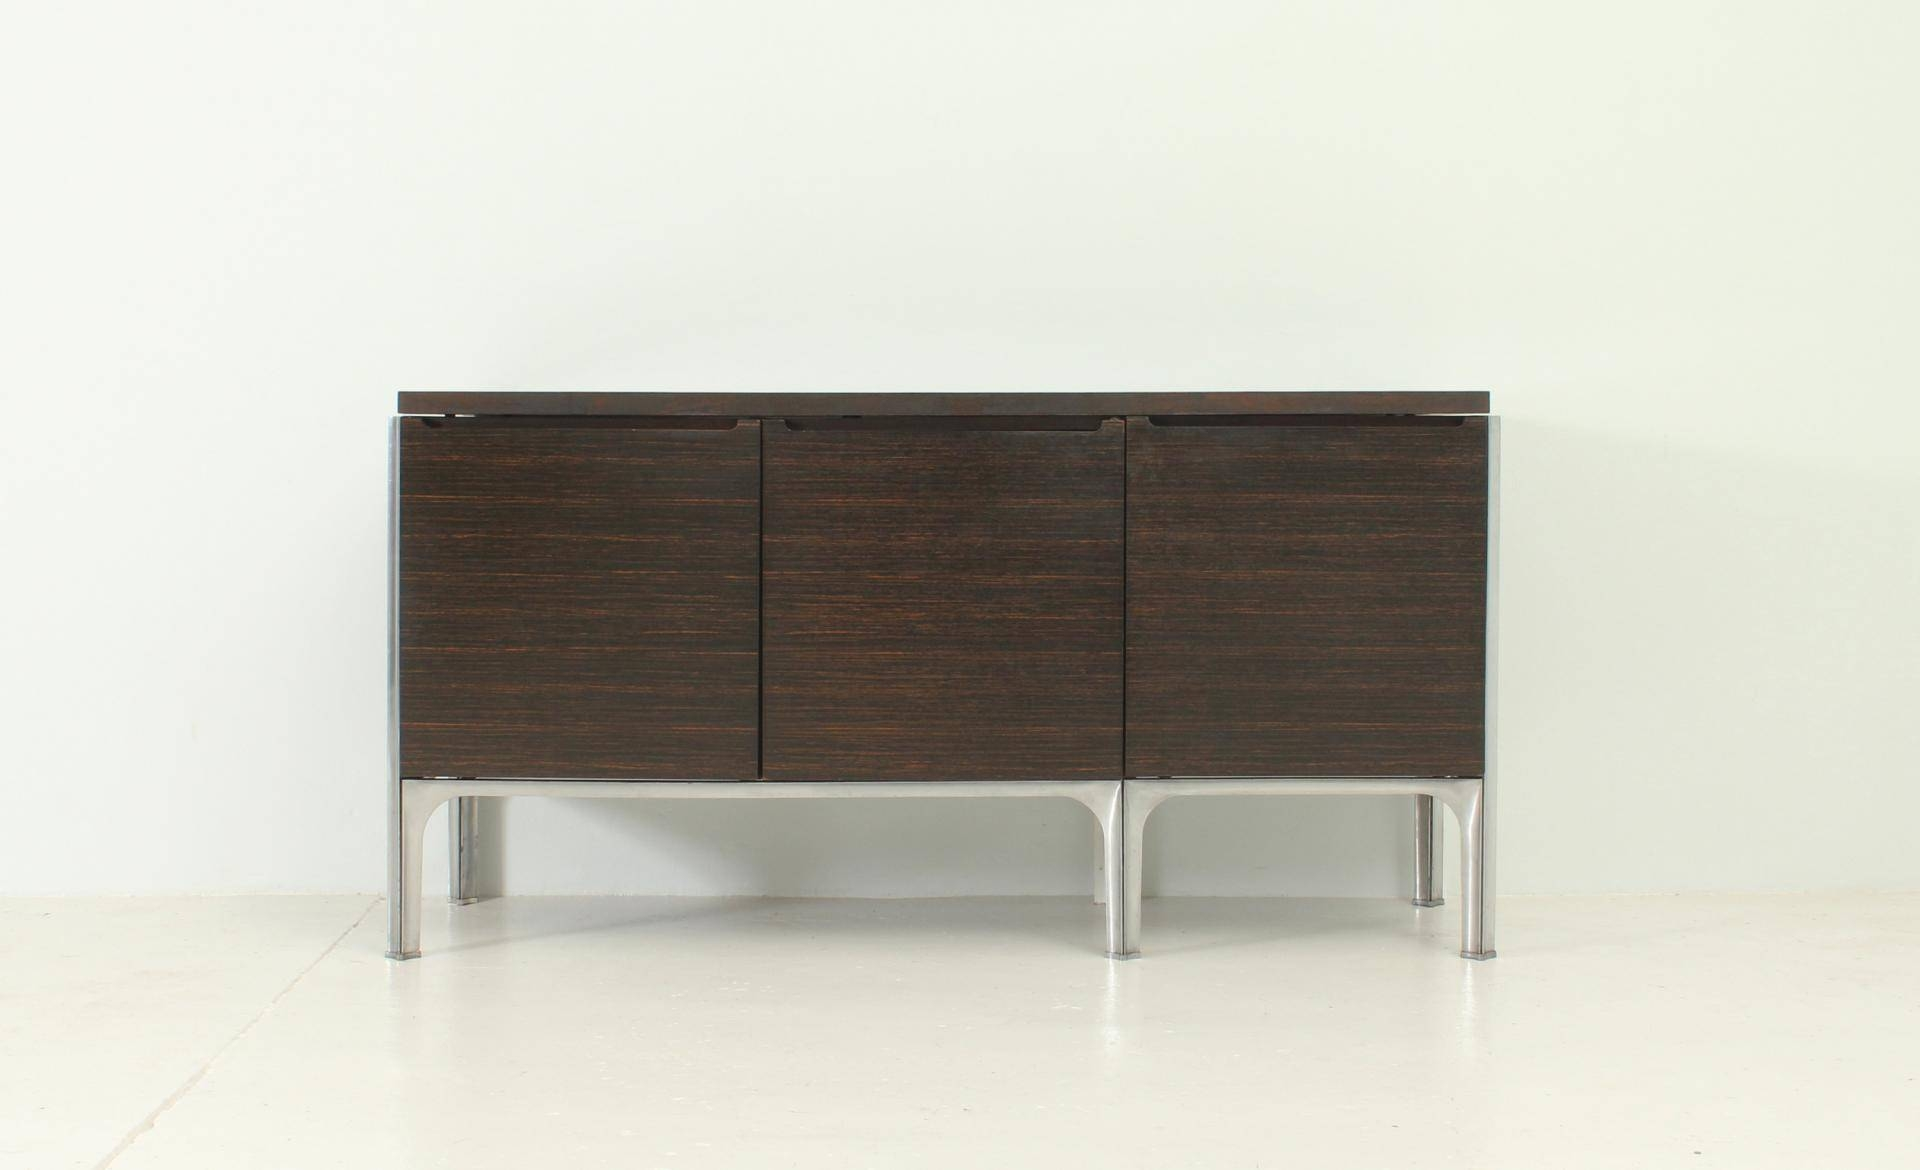 Macassar Ebony Wood Sideboardraymond Loewy For Df 2000 For Intended For Most Up To Date Affinity Sideboards (View 10 of 15)